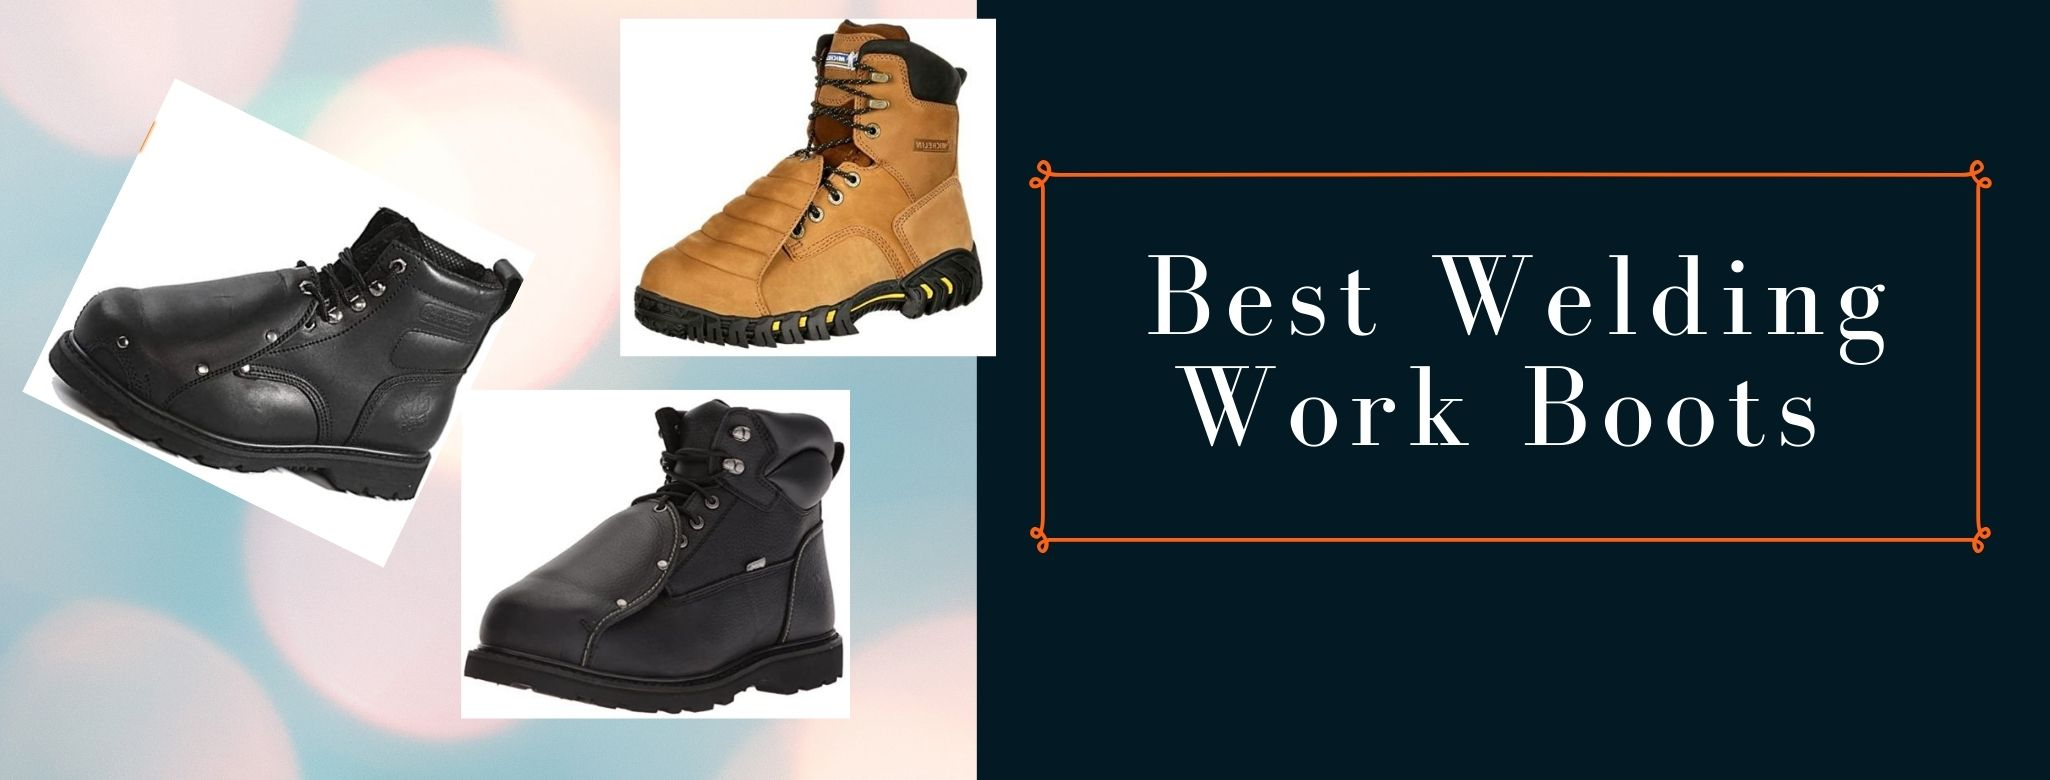 Top-rated tough work shoes